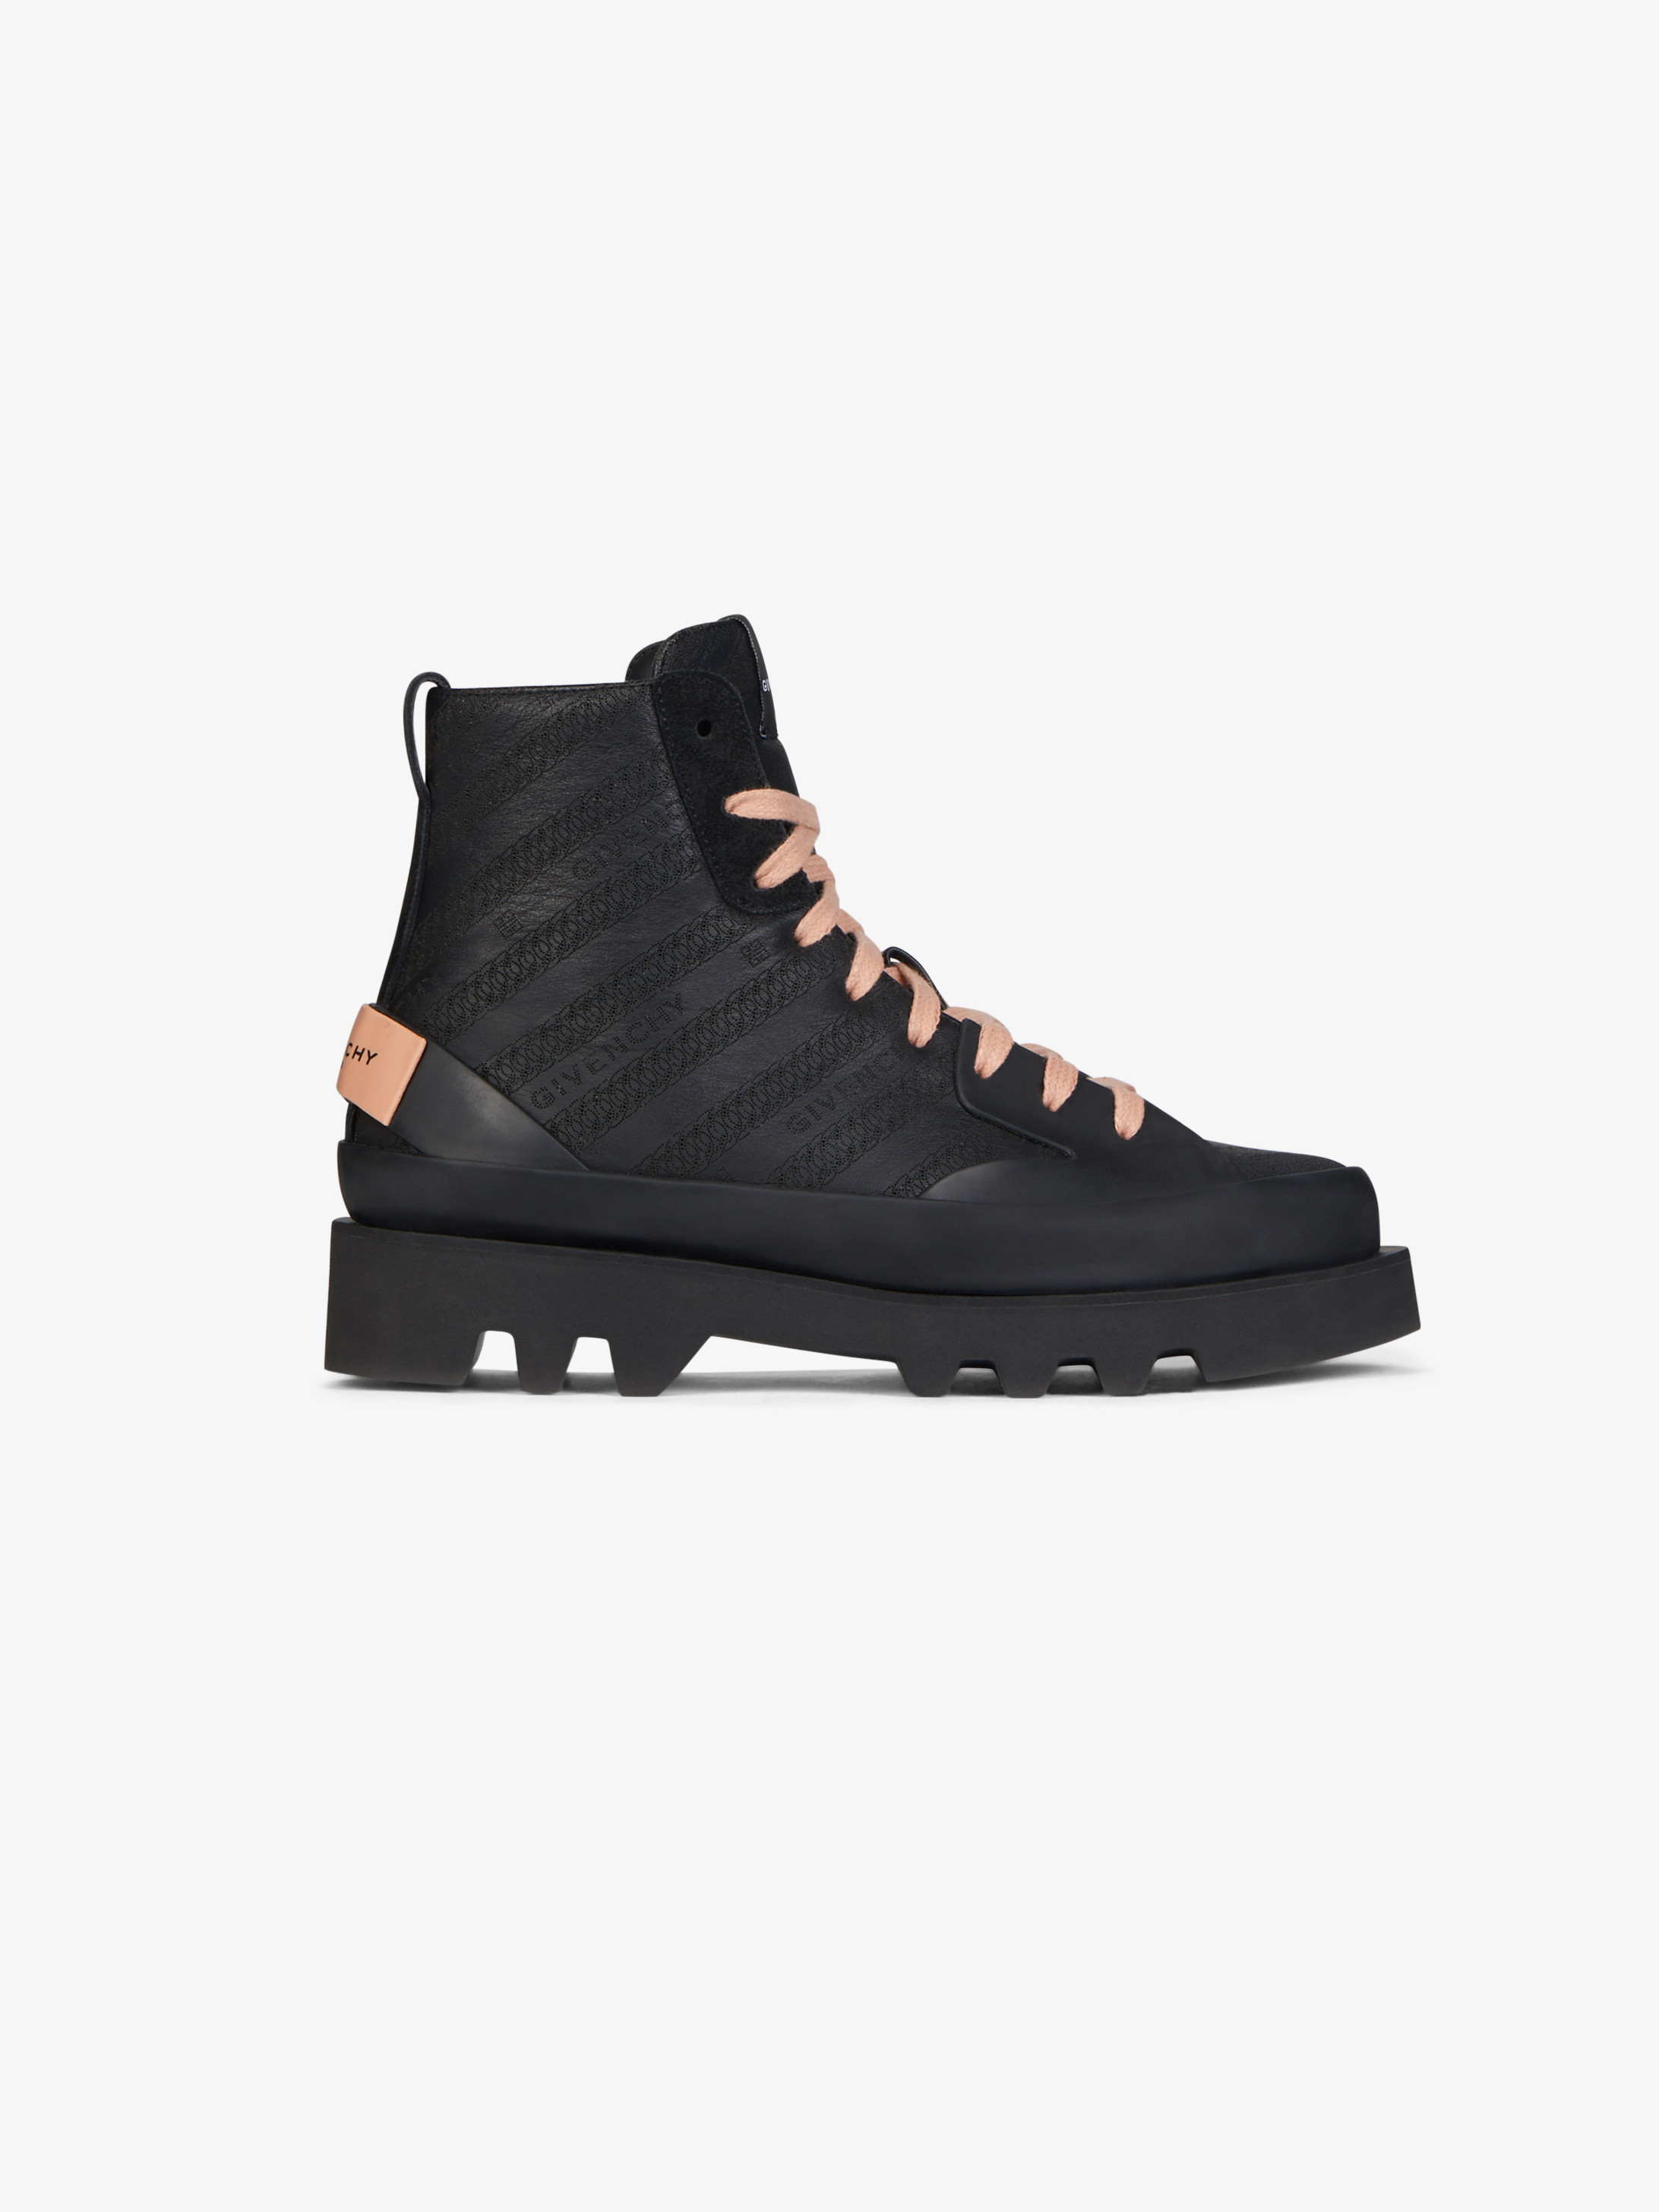 GIVENCHY Chain Clapham mid sneakers in leather